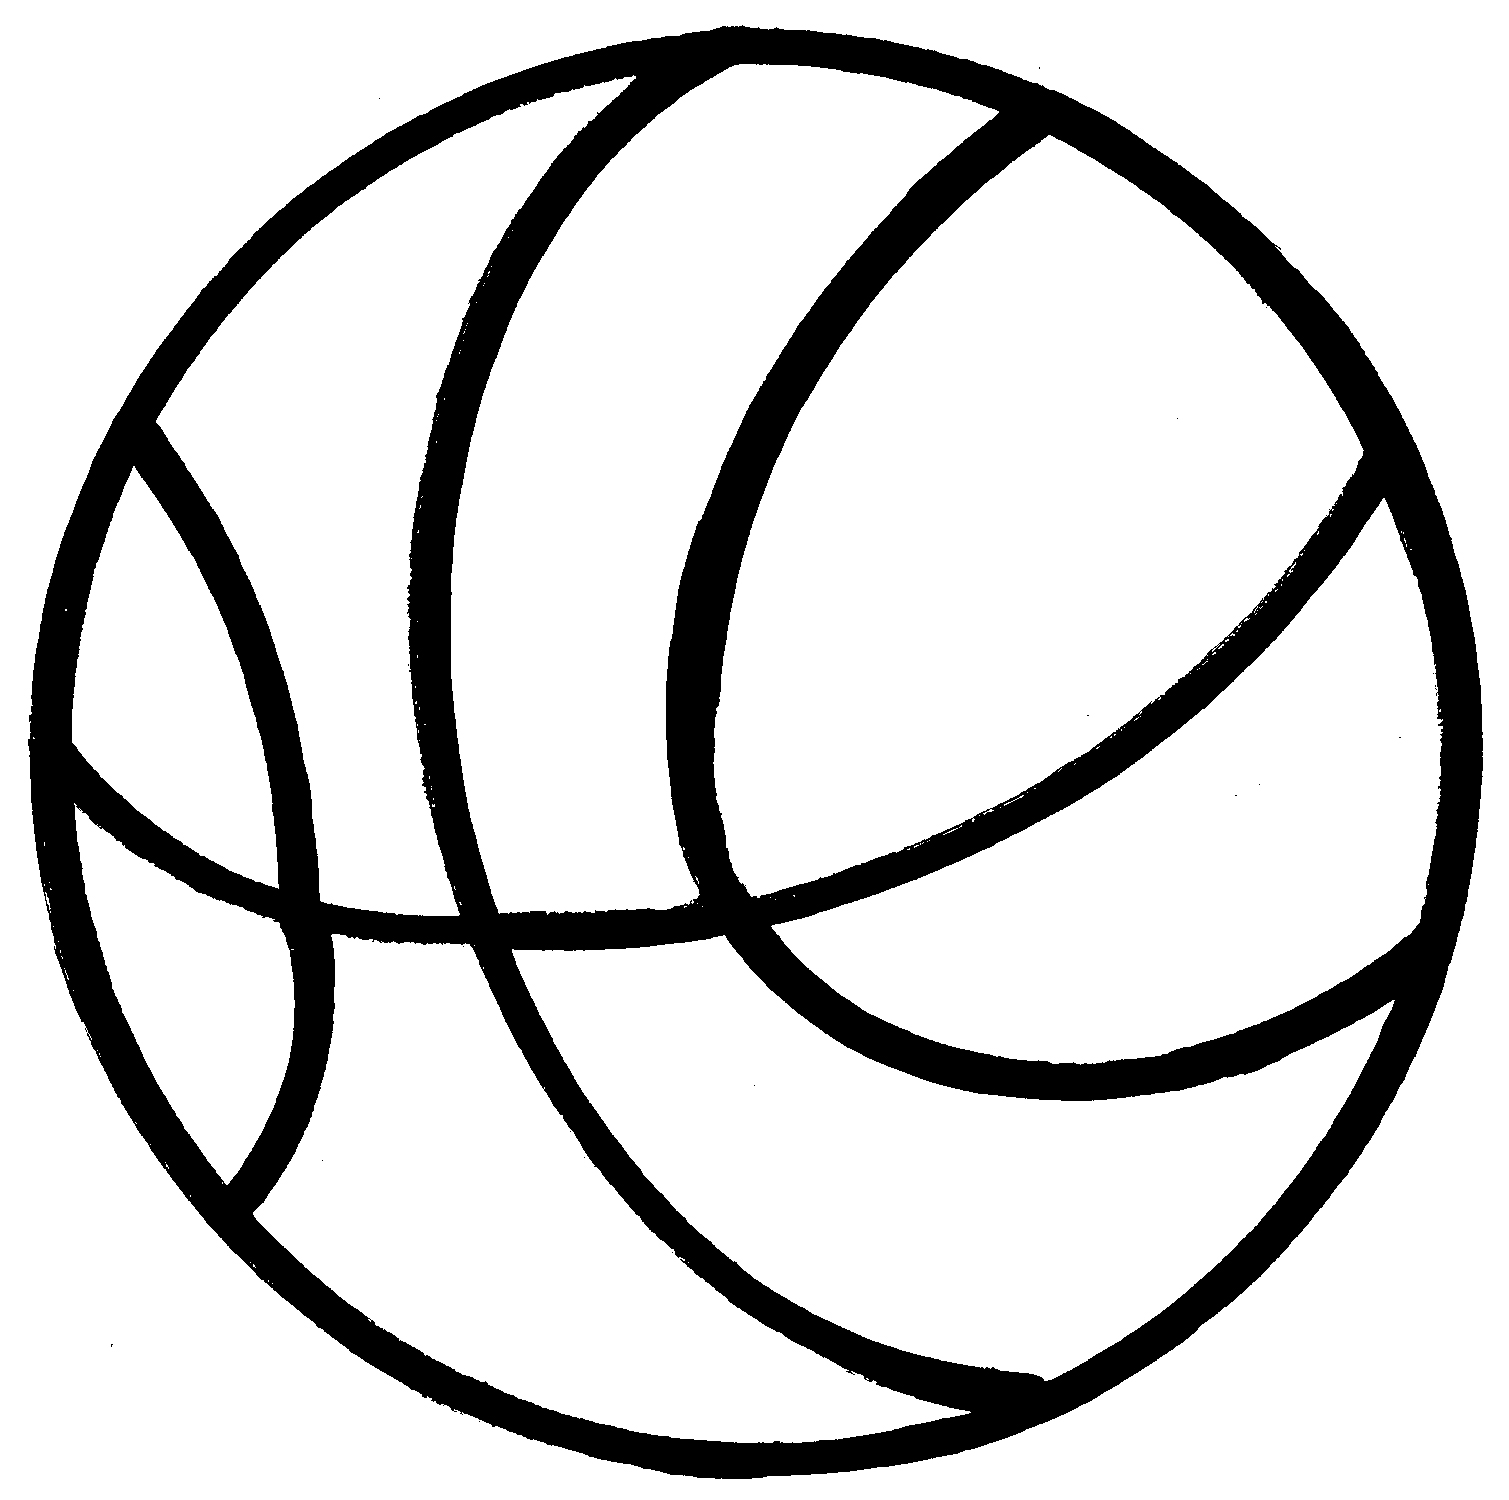 hight resolution of basketball clipart black and white clipart panda free clipart